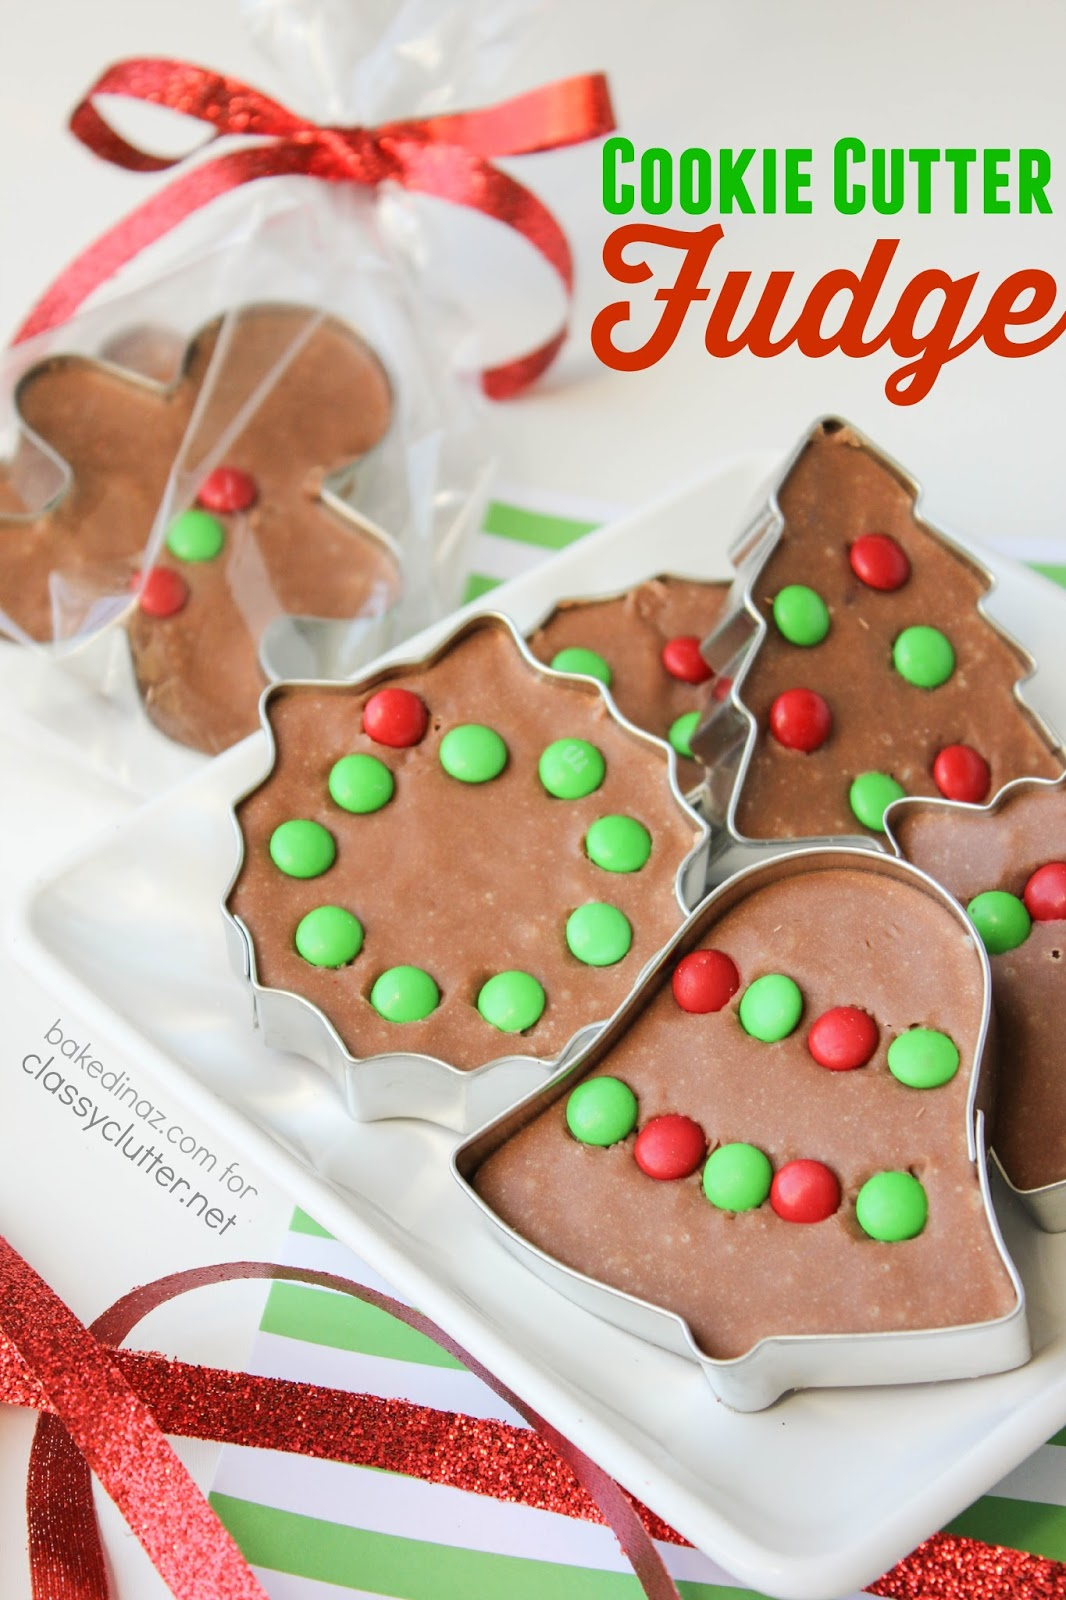 Cookie Cutter Fudge